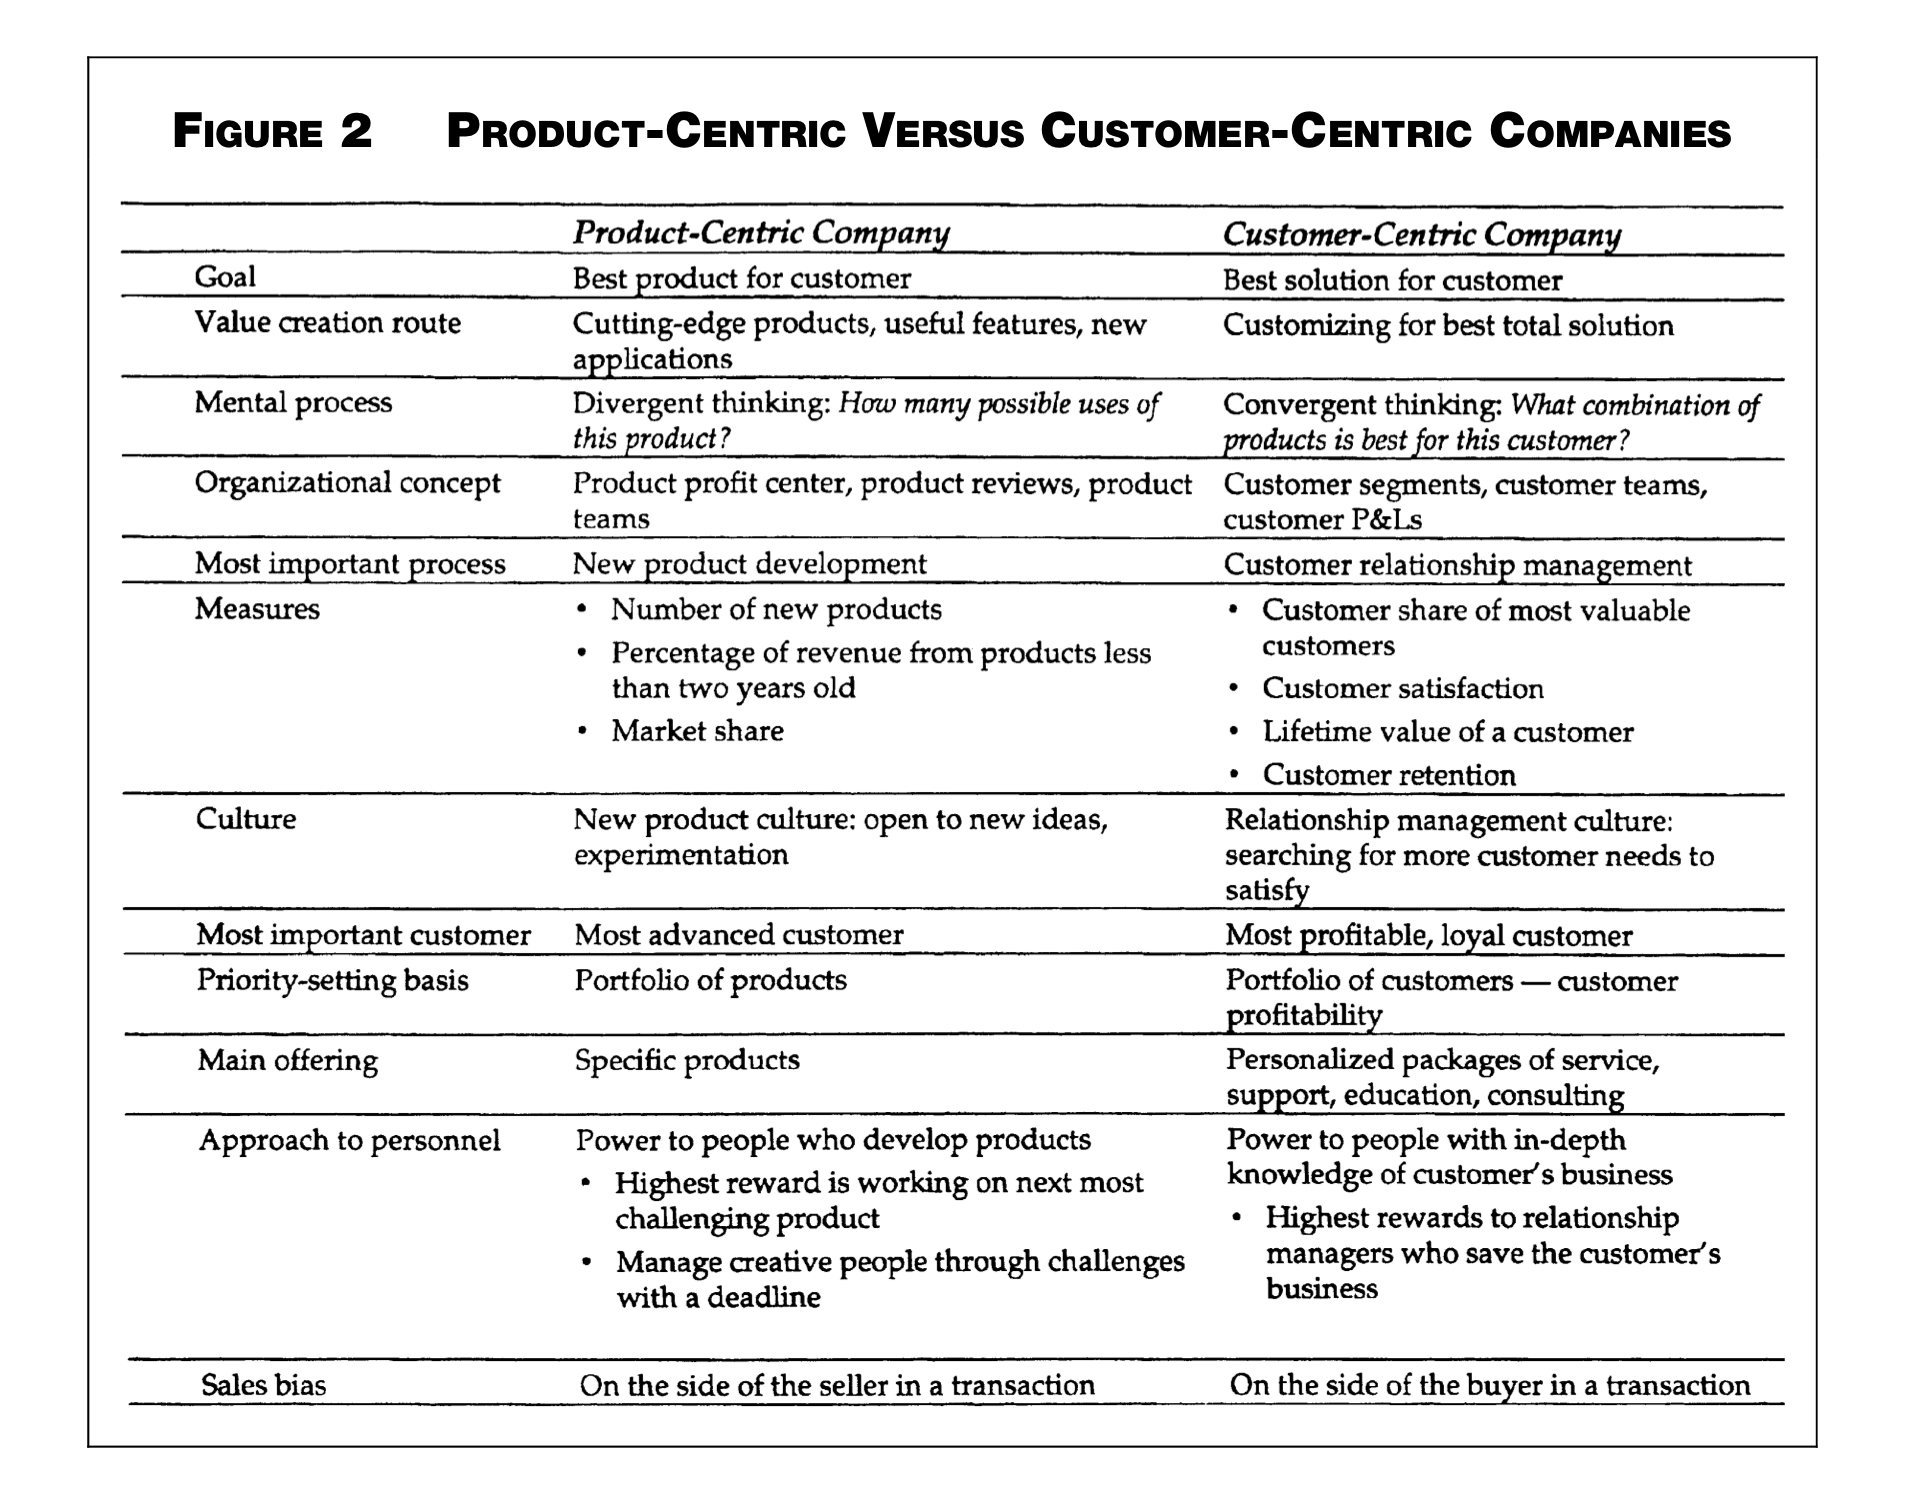 Reorganize for Customer-Centric